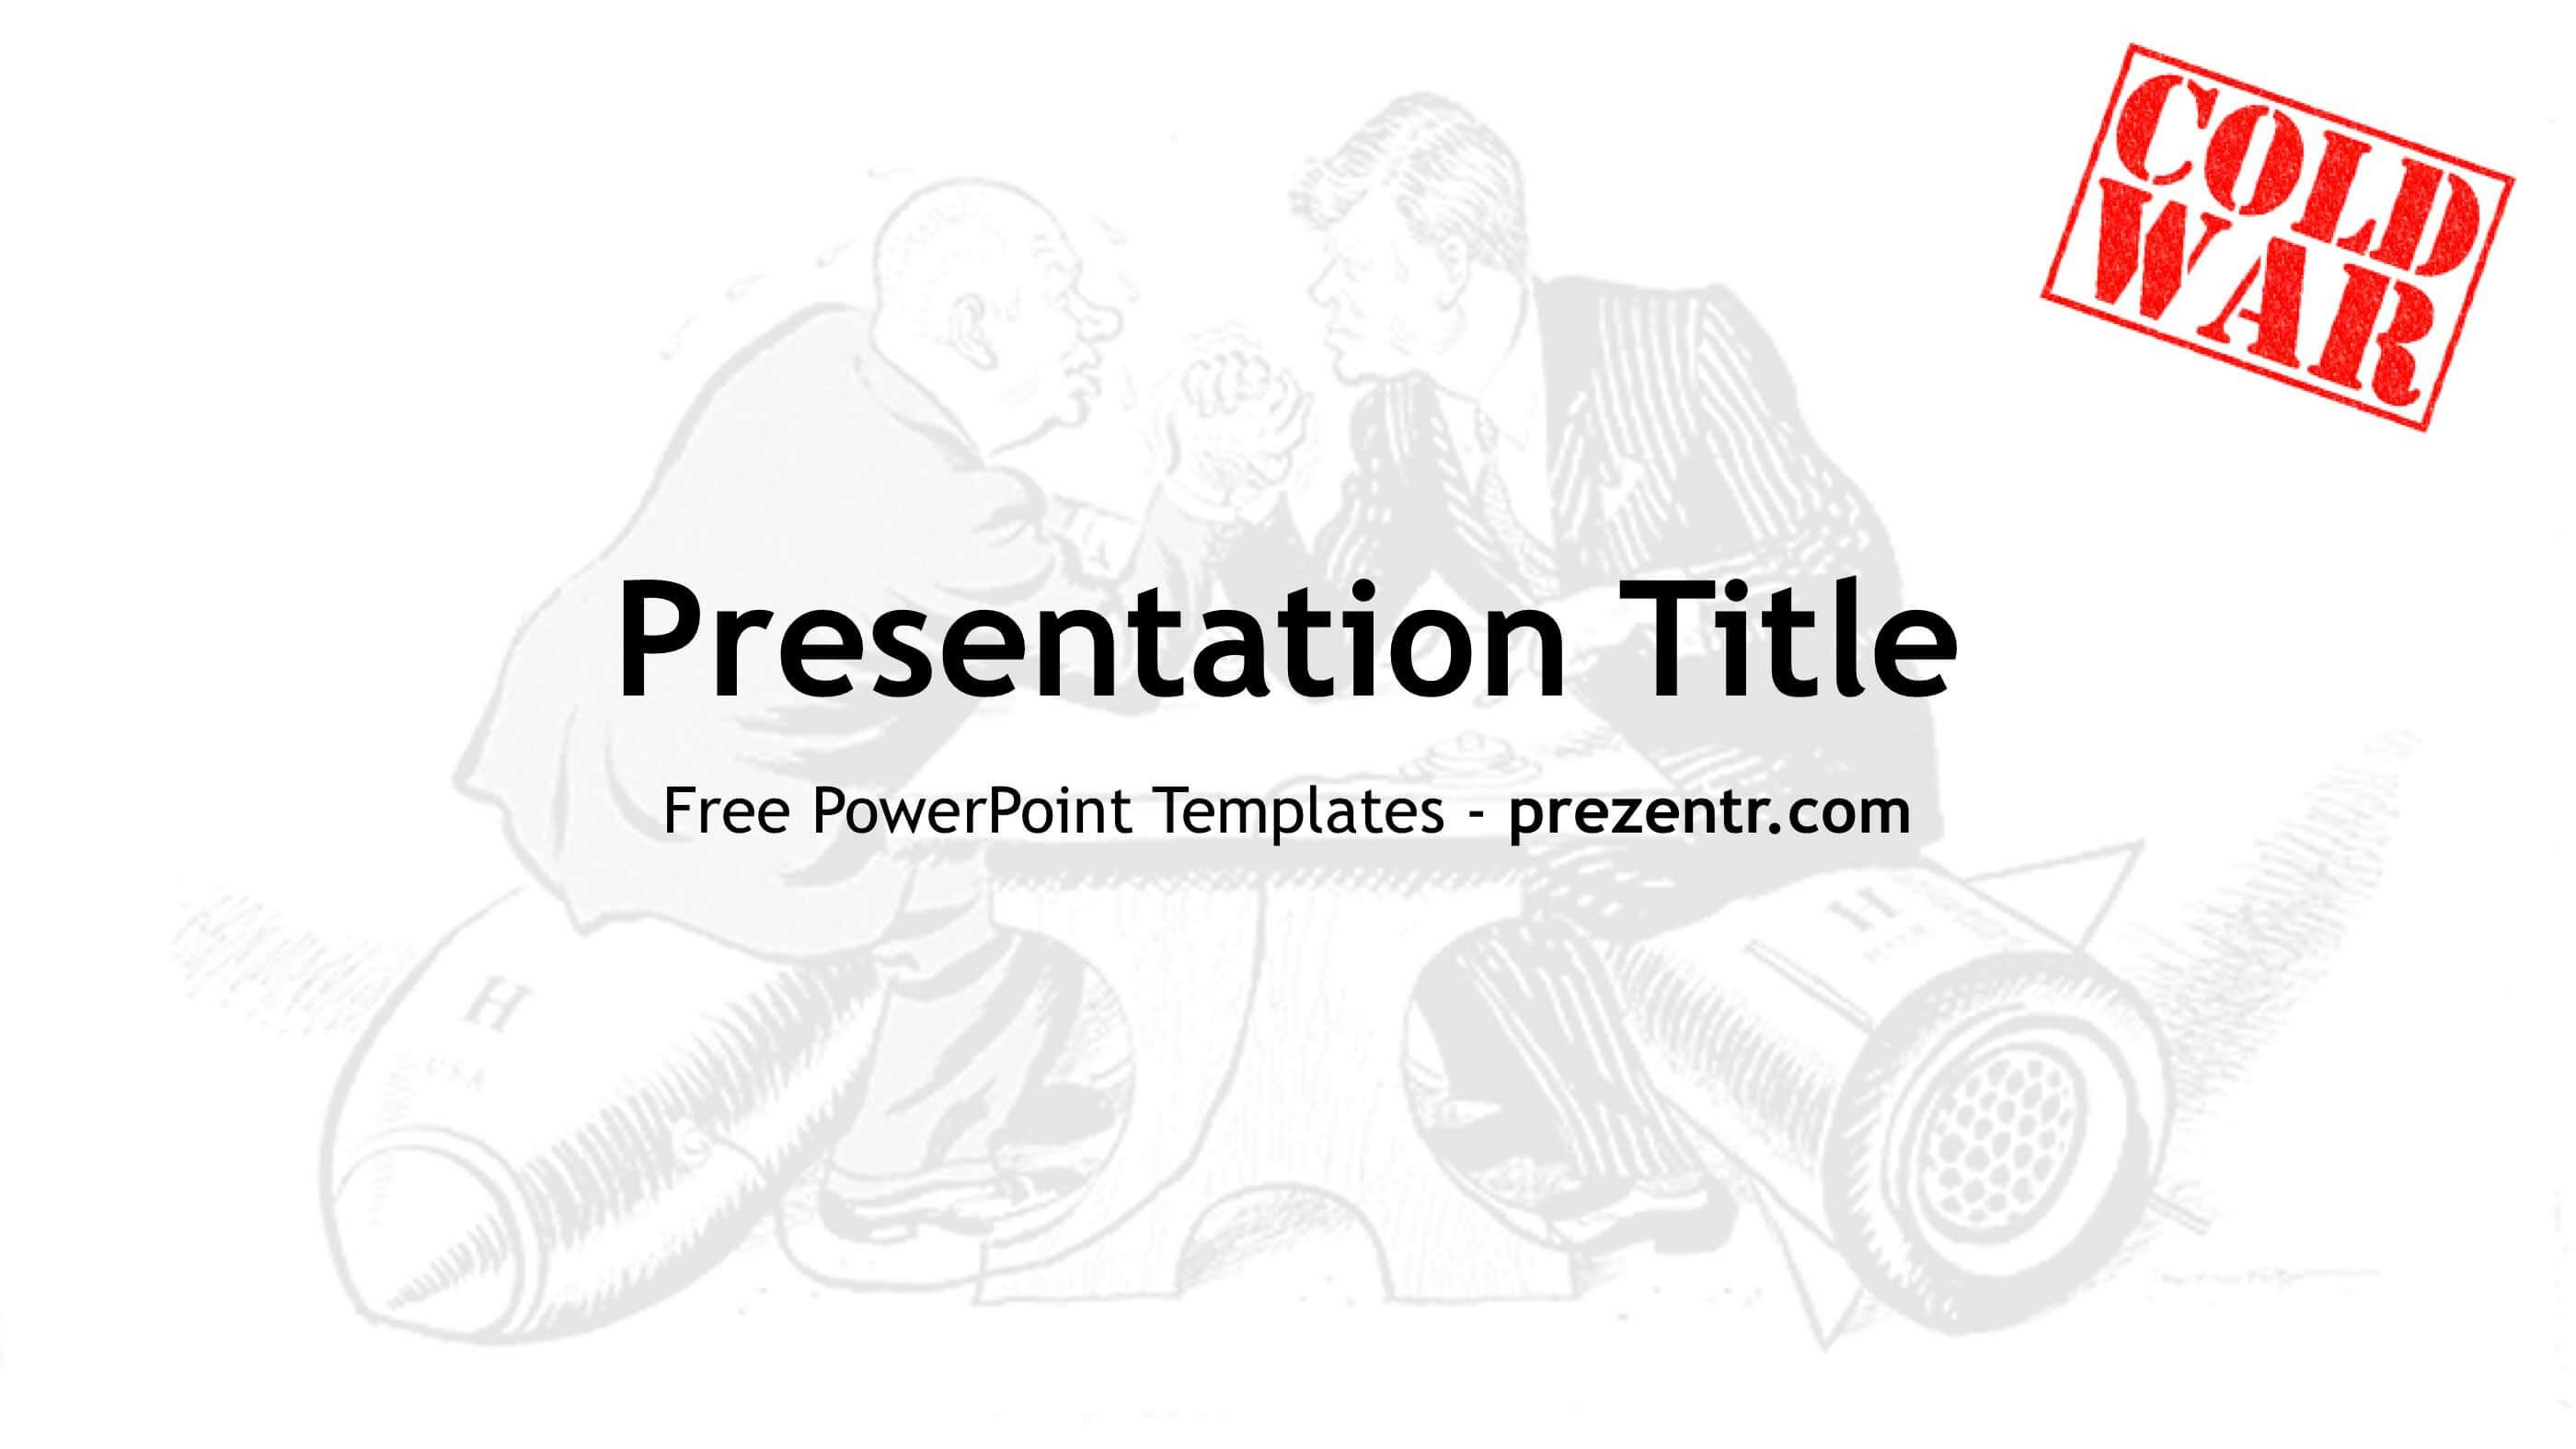 Cold war powerpoint template powerpoint templates pinterest cold war powerpoint template toneelgroepblik Choice Image